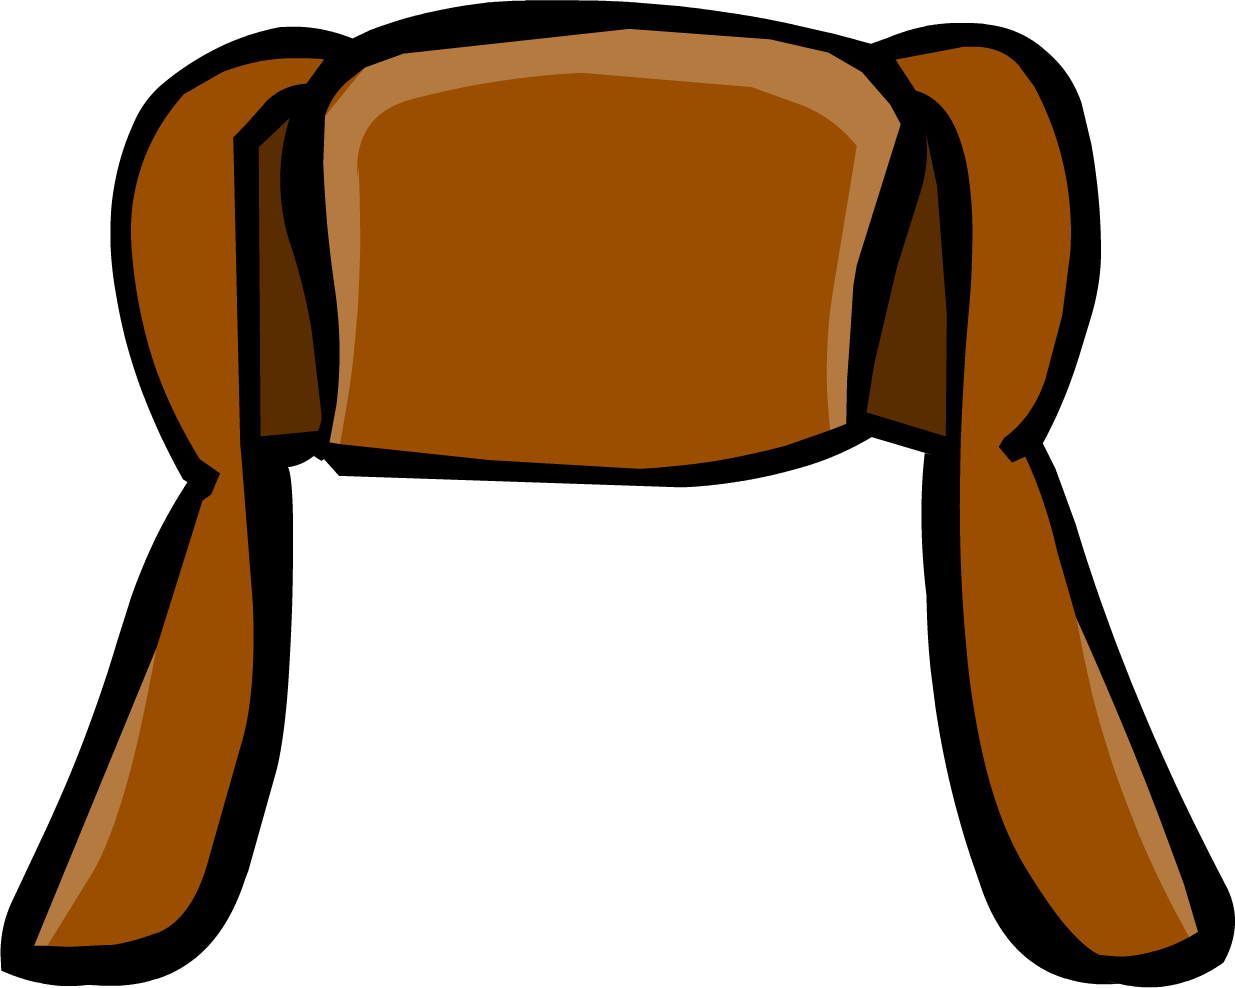 Russian hat png. Image clothing icon id